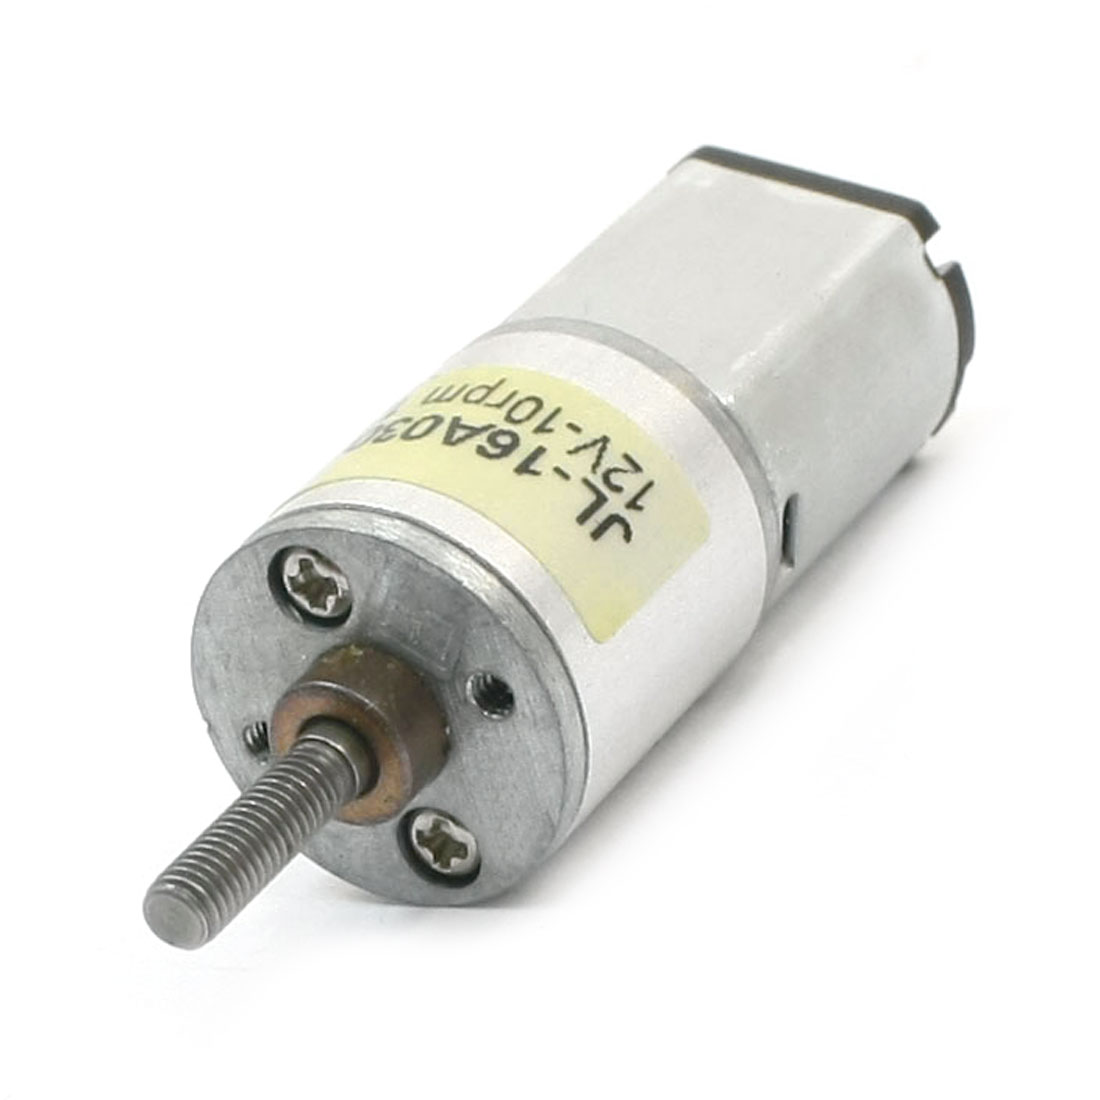 3mm Dia Drive Shaft 10rpm Output High Torque Rotary Speed Reducing Connecting Cylinder Shape Electric Geared Box Motor DC 12V